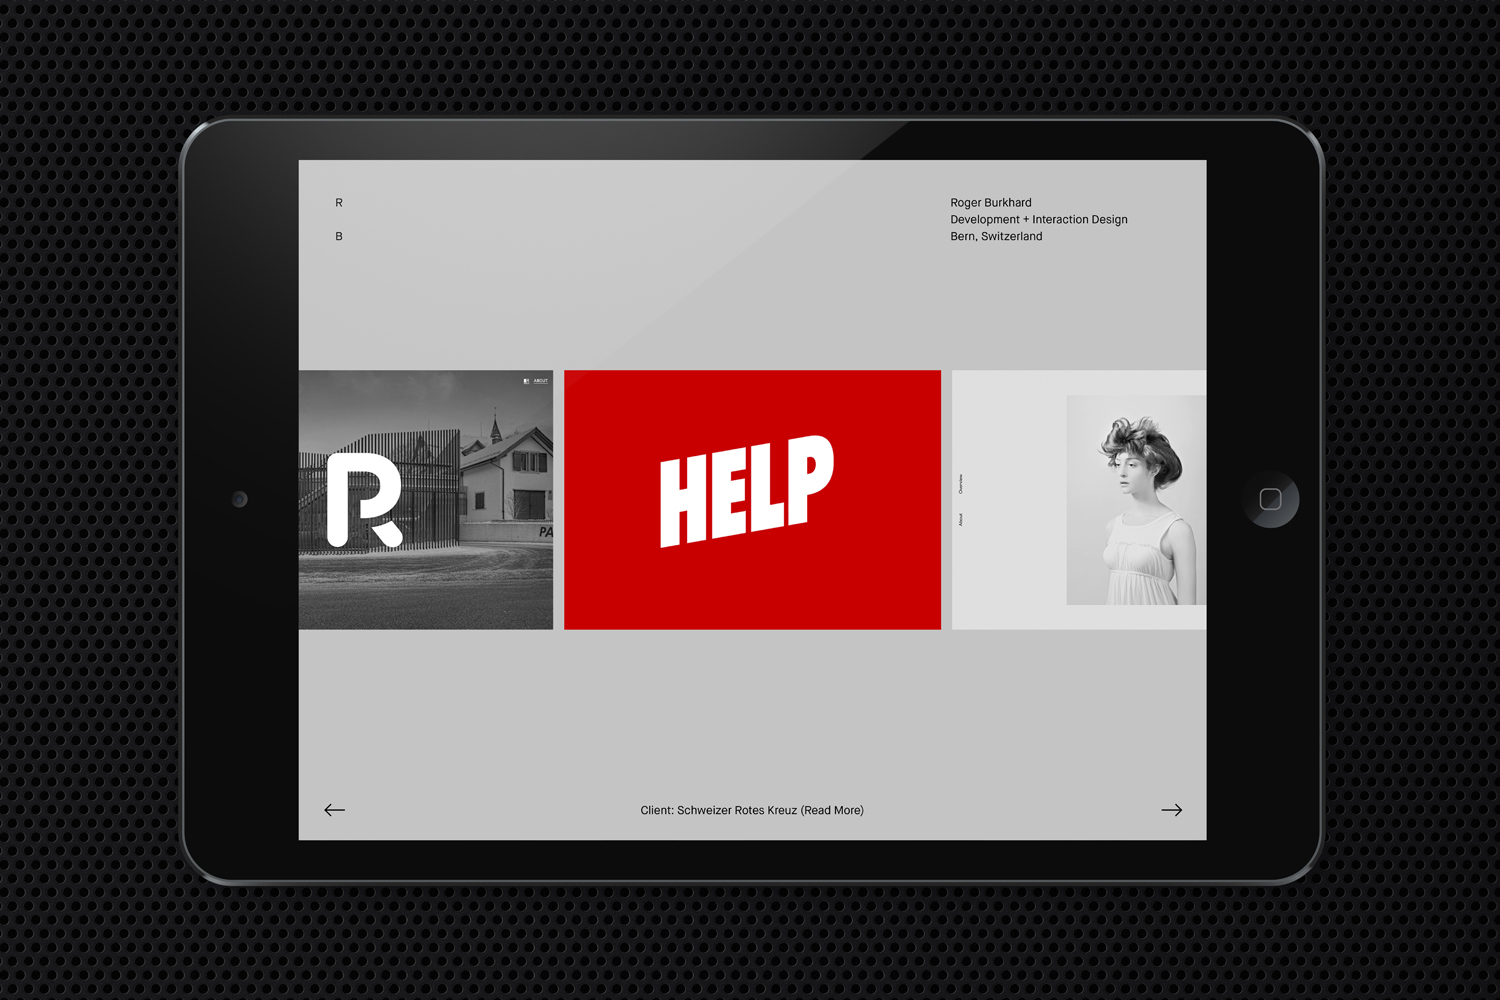 Logo, stationery, business cards and website by Lundgren+Lindqvist for Swiss web development and interactive studio Roger Burkhard